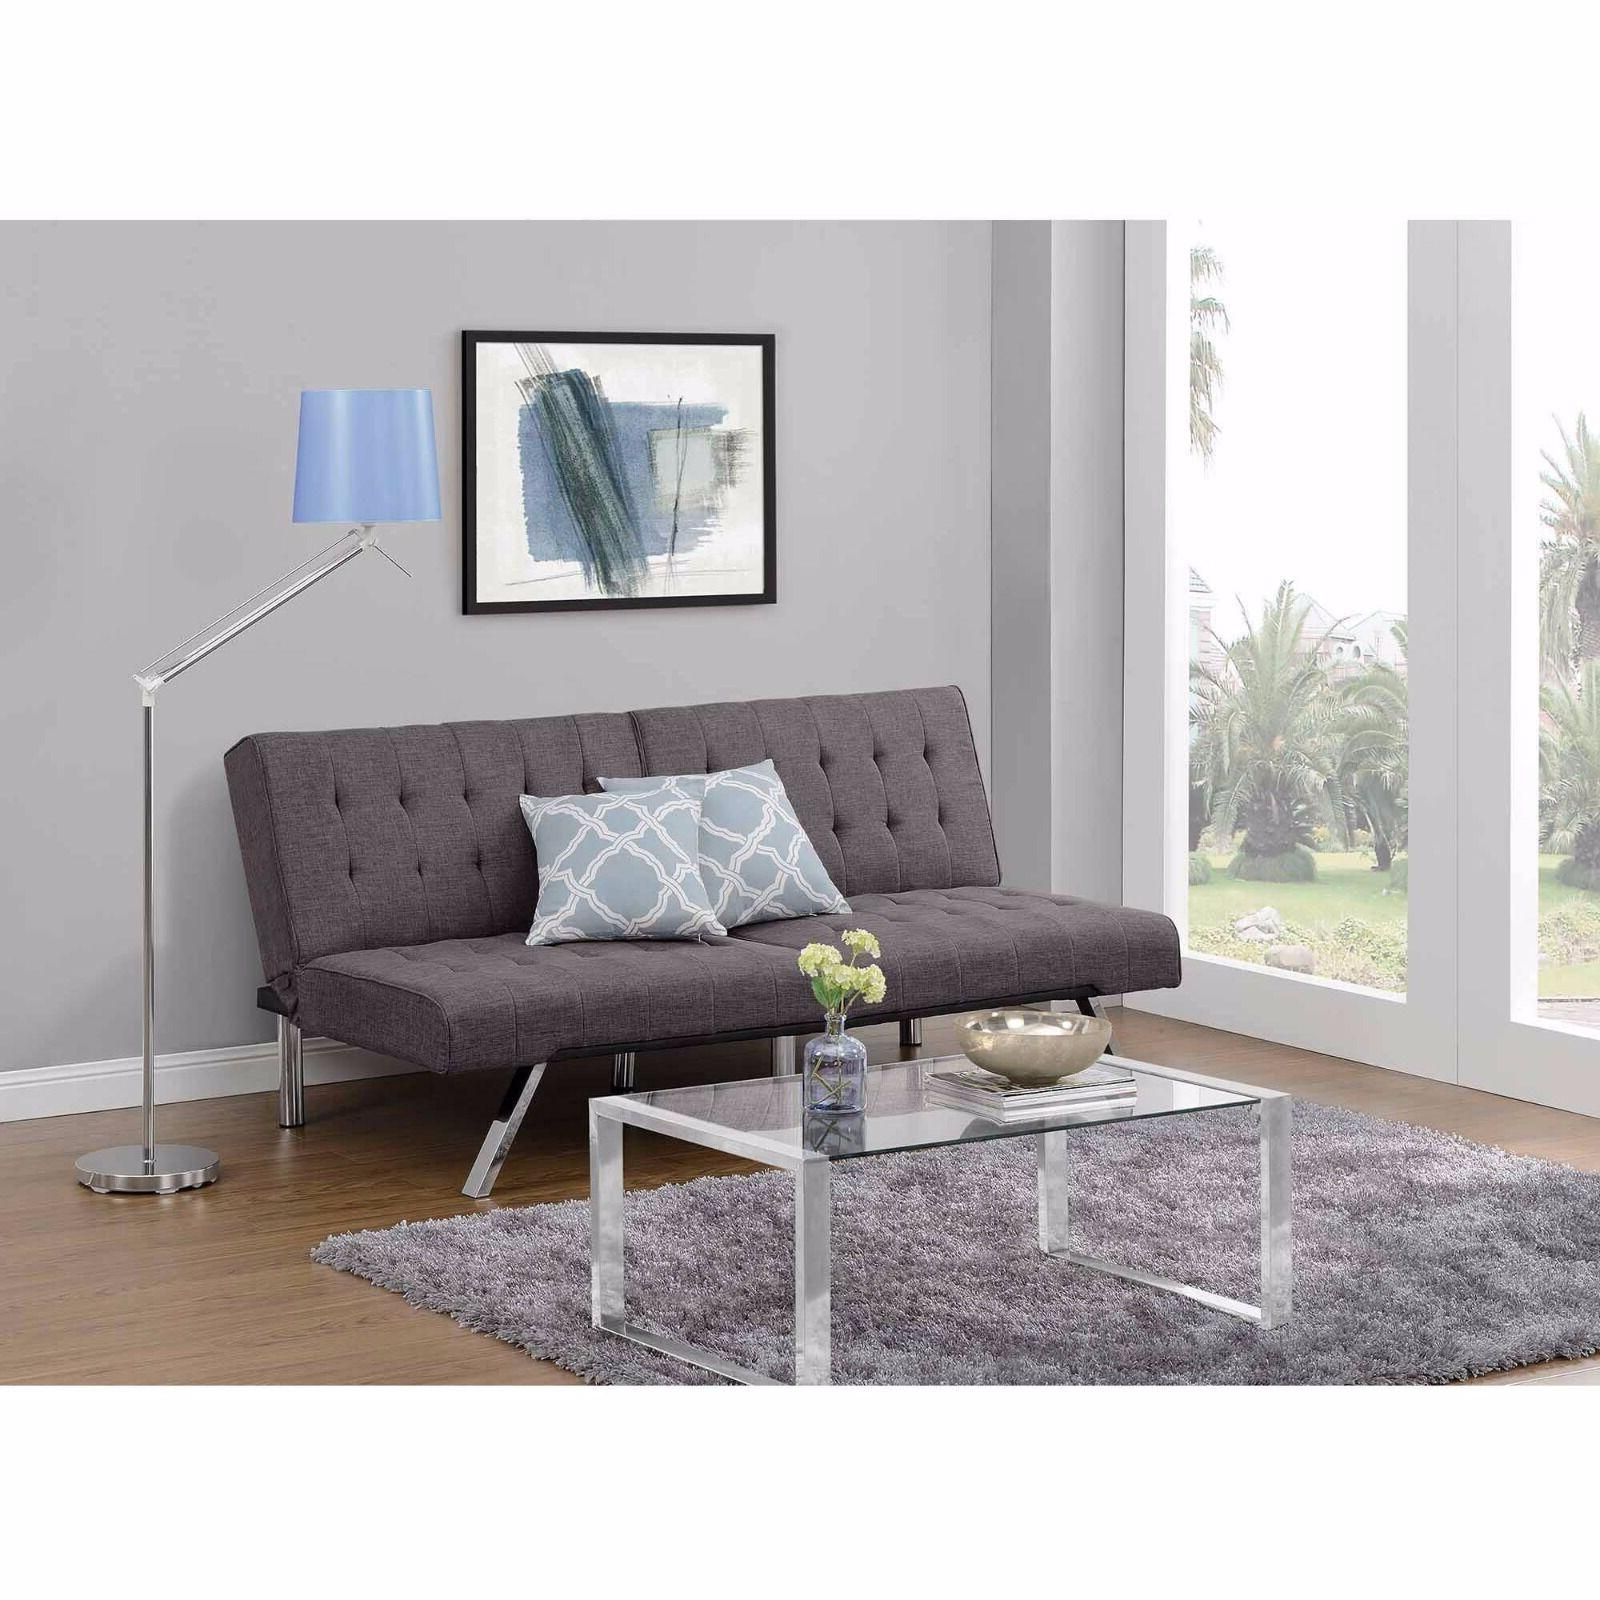 Sectional Grey Futon & Chaise Modern Upholstered